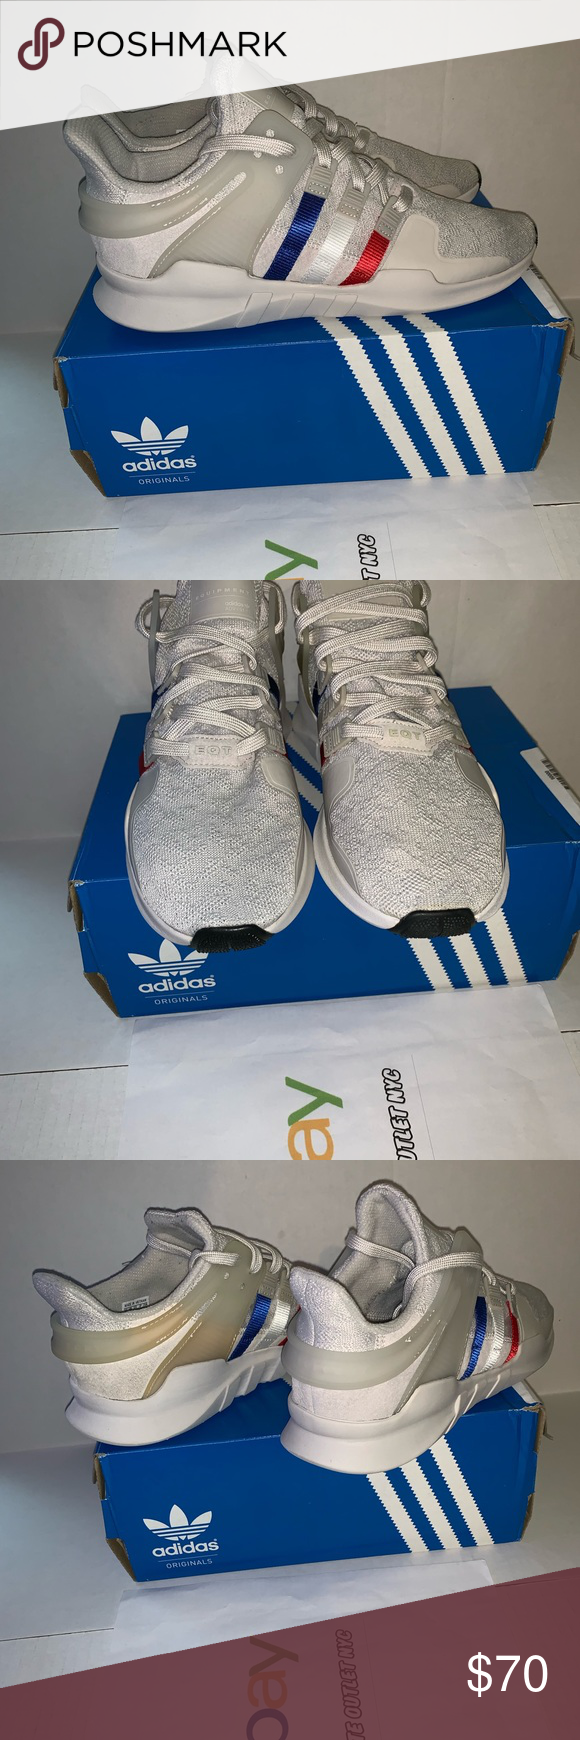 new arrival 99a2c 1f758 New Adidas EQT Support ADV Size 9